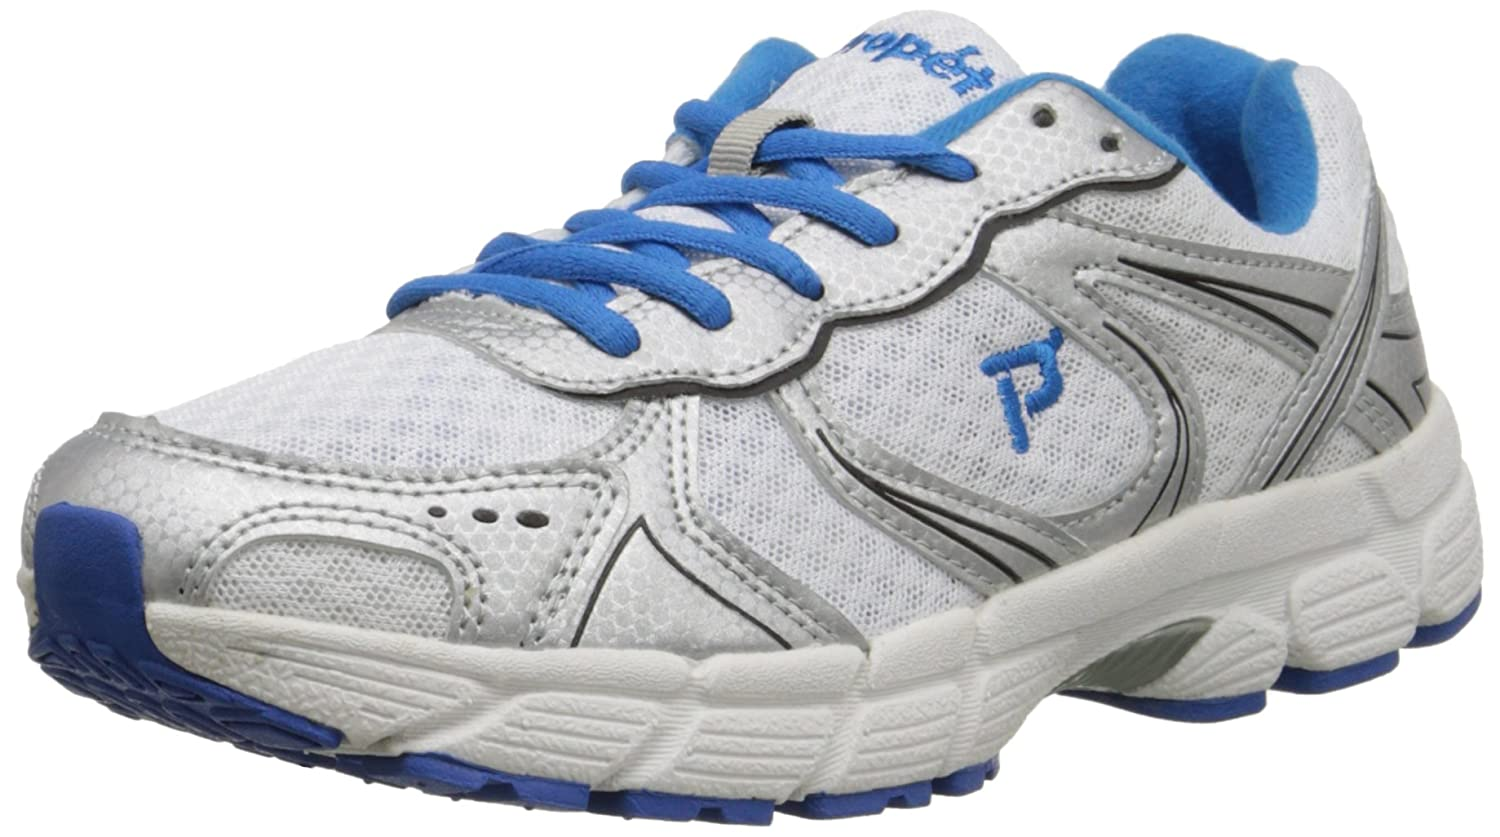 Propet Women's XV550 Walking Shoe B011RELRXG 11 N US|White/Royal Blue